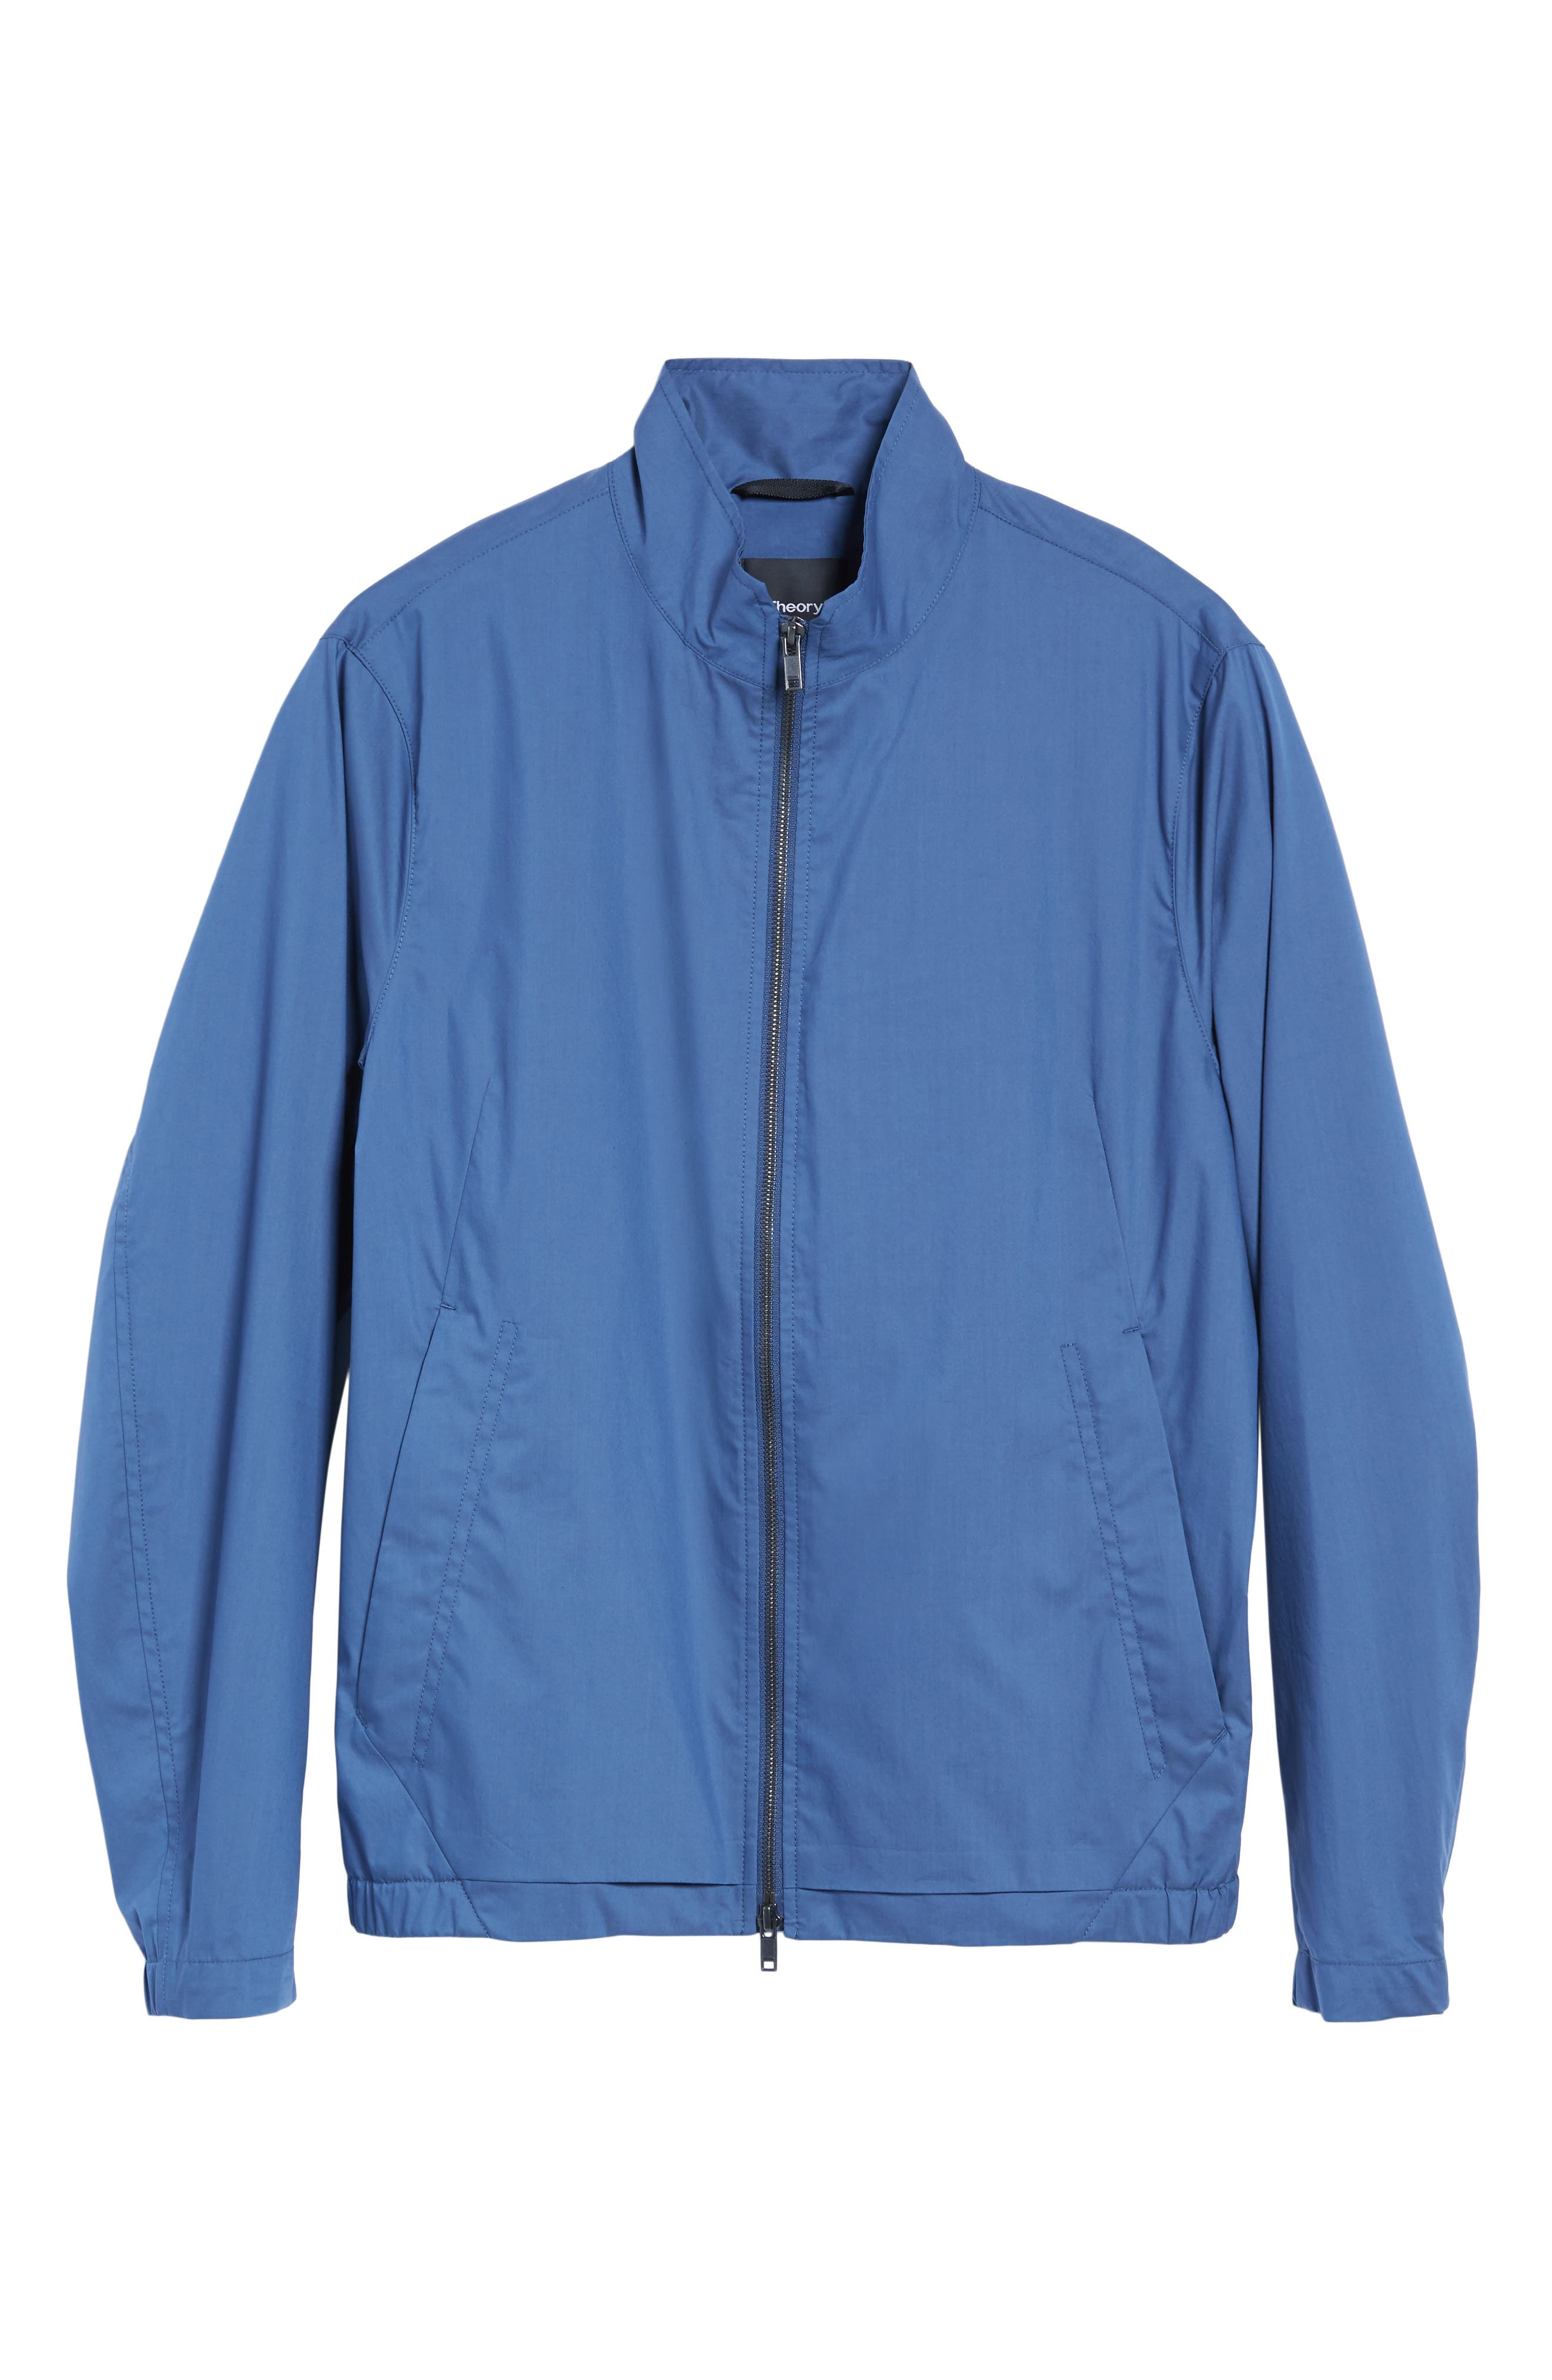 Draftbreak Tech Jacket,                             Alternate thumbnail 5, color,                             400